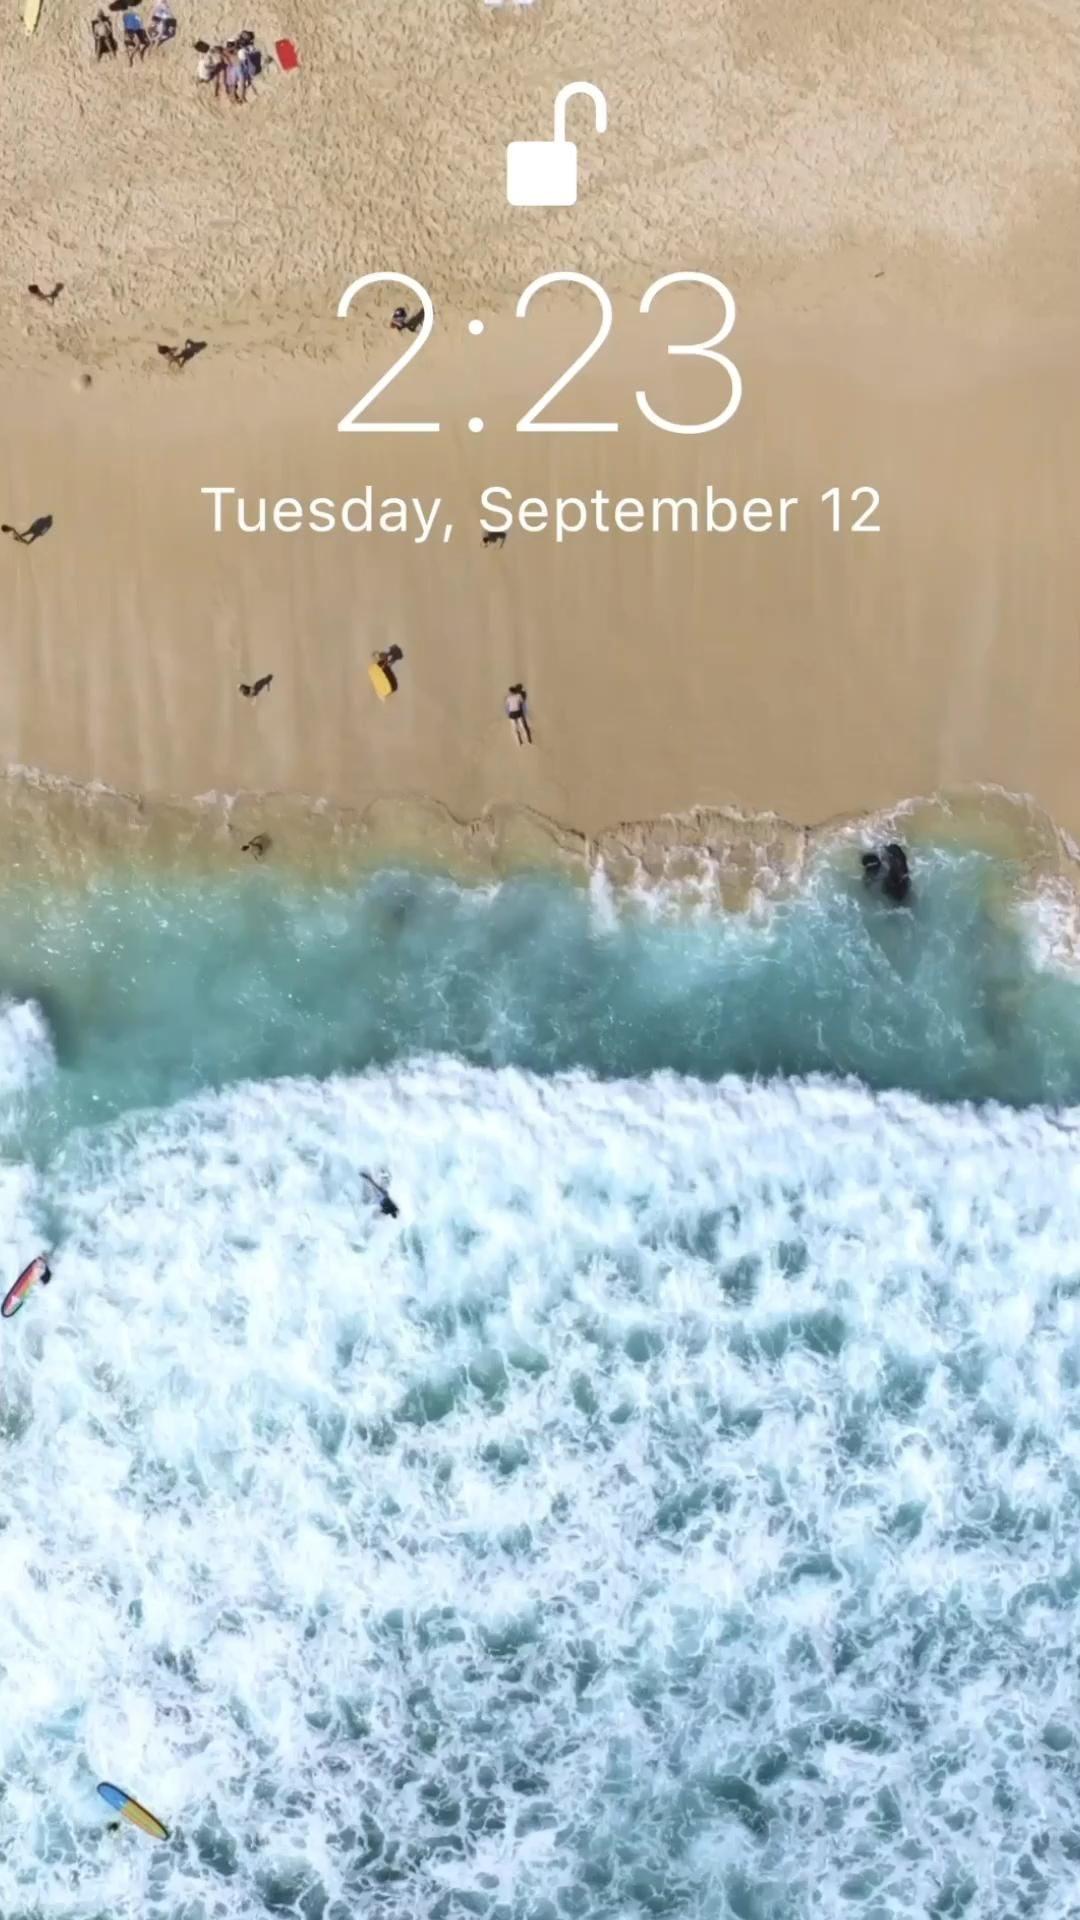 Cool wallpaper for your iPhone 11 from Vibe☀️ #wallpapers #summer #beach #livewallpaper #wallpapertumblr #background